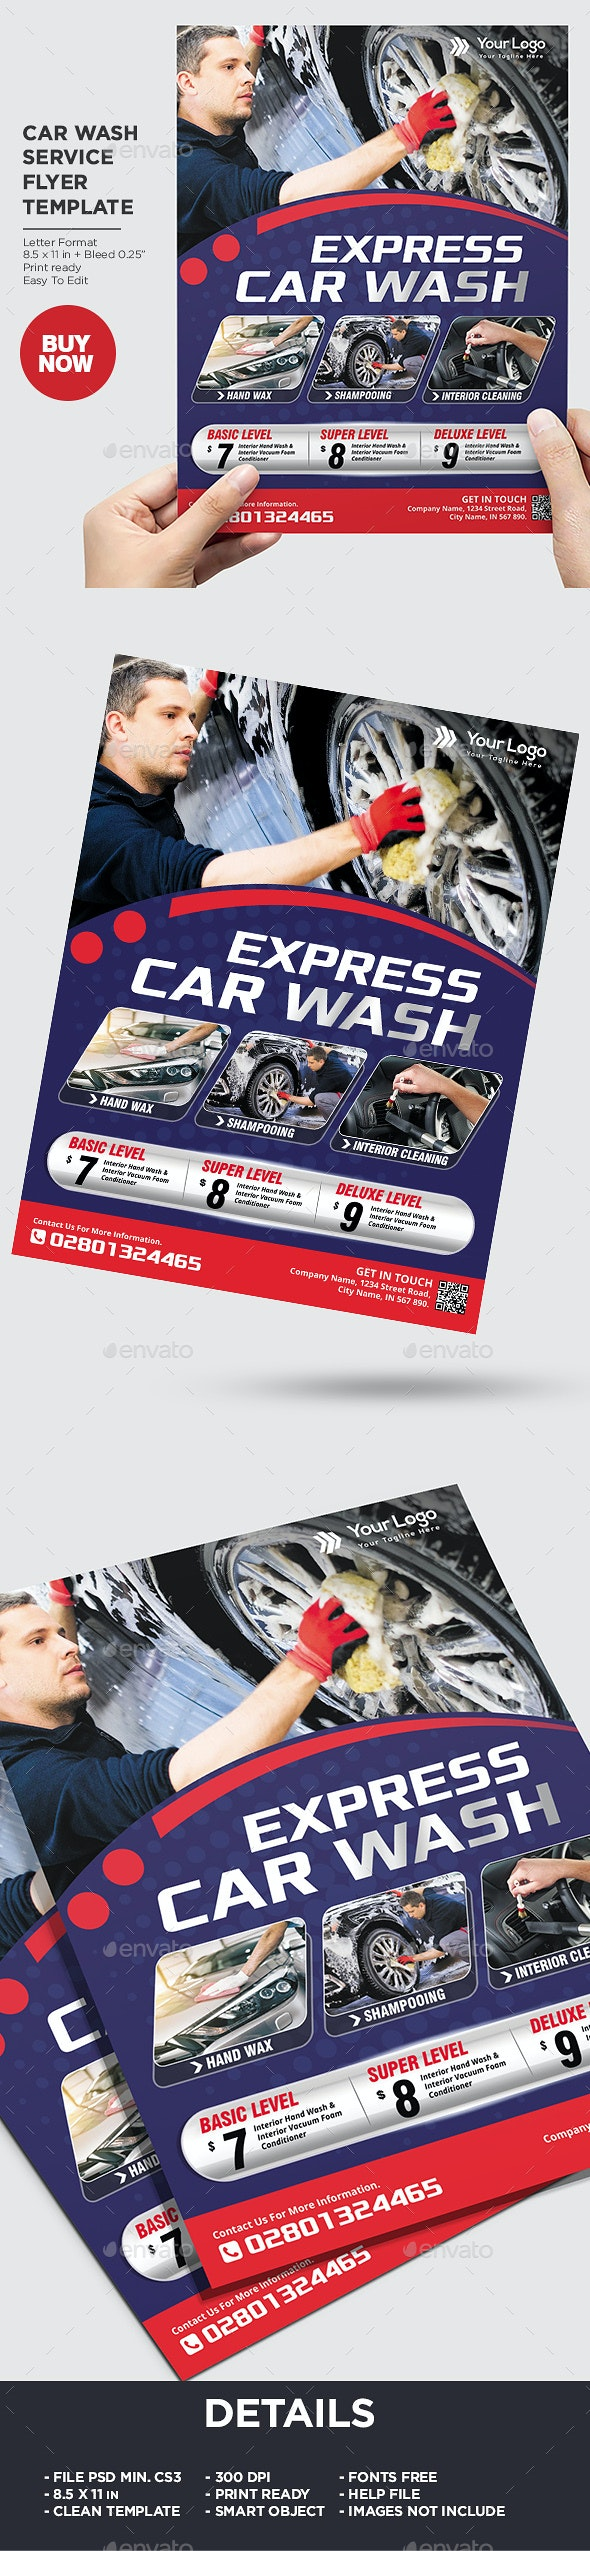 Express Car Wash Flyer Template - Corporate Flyers